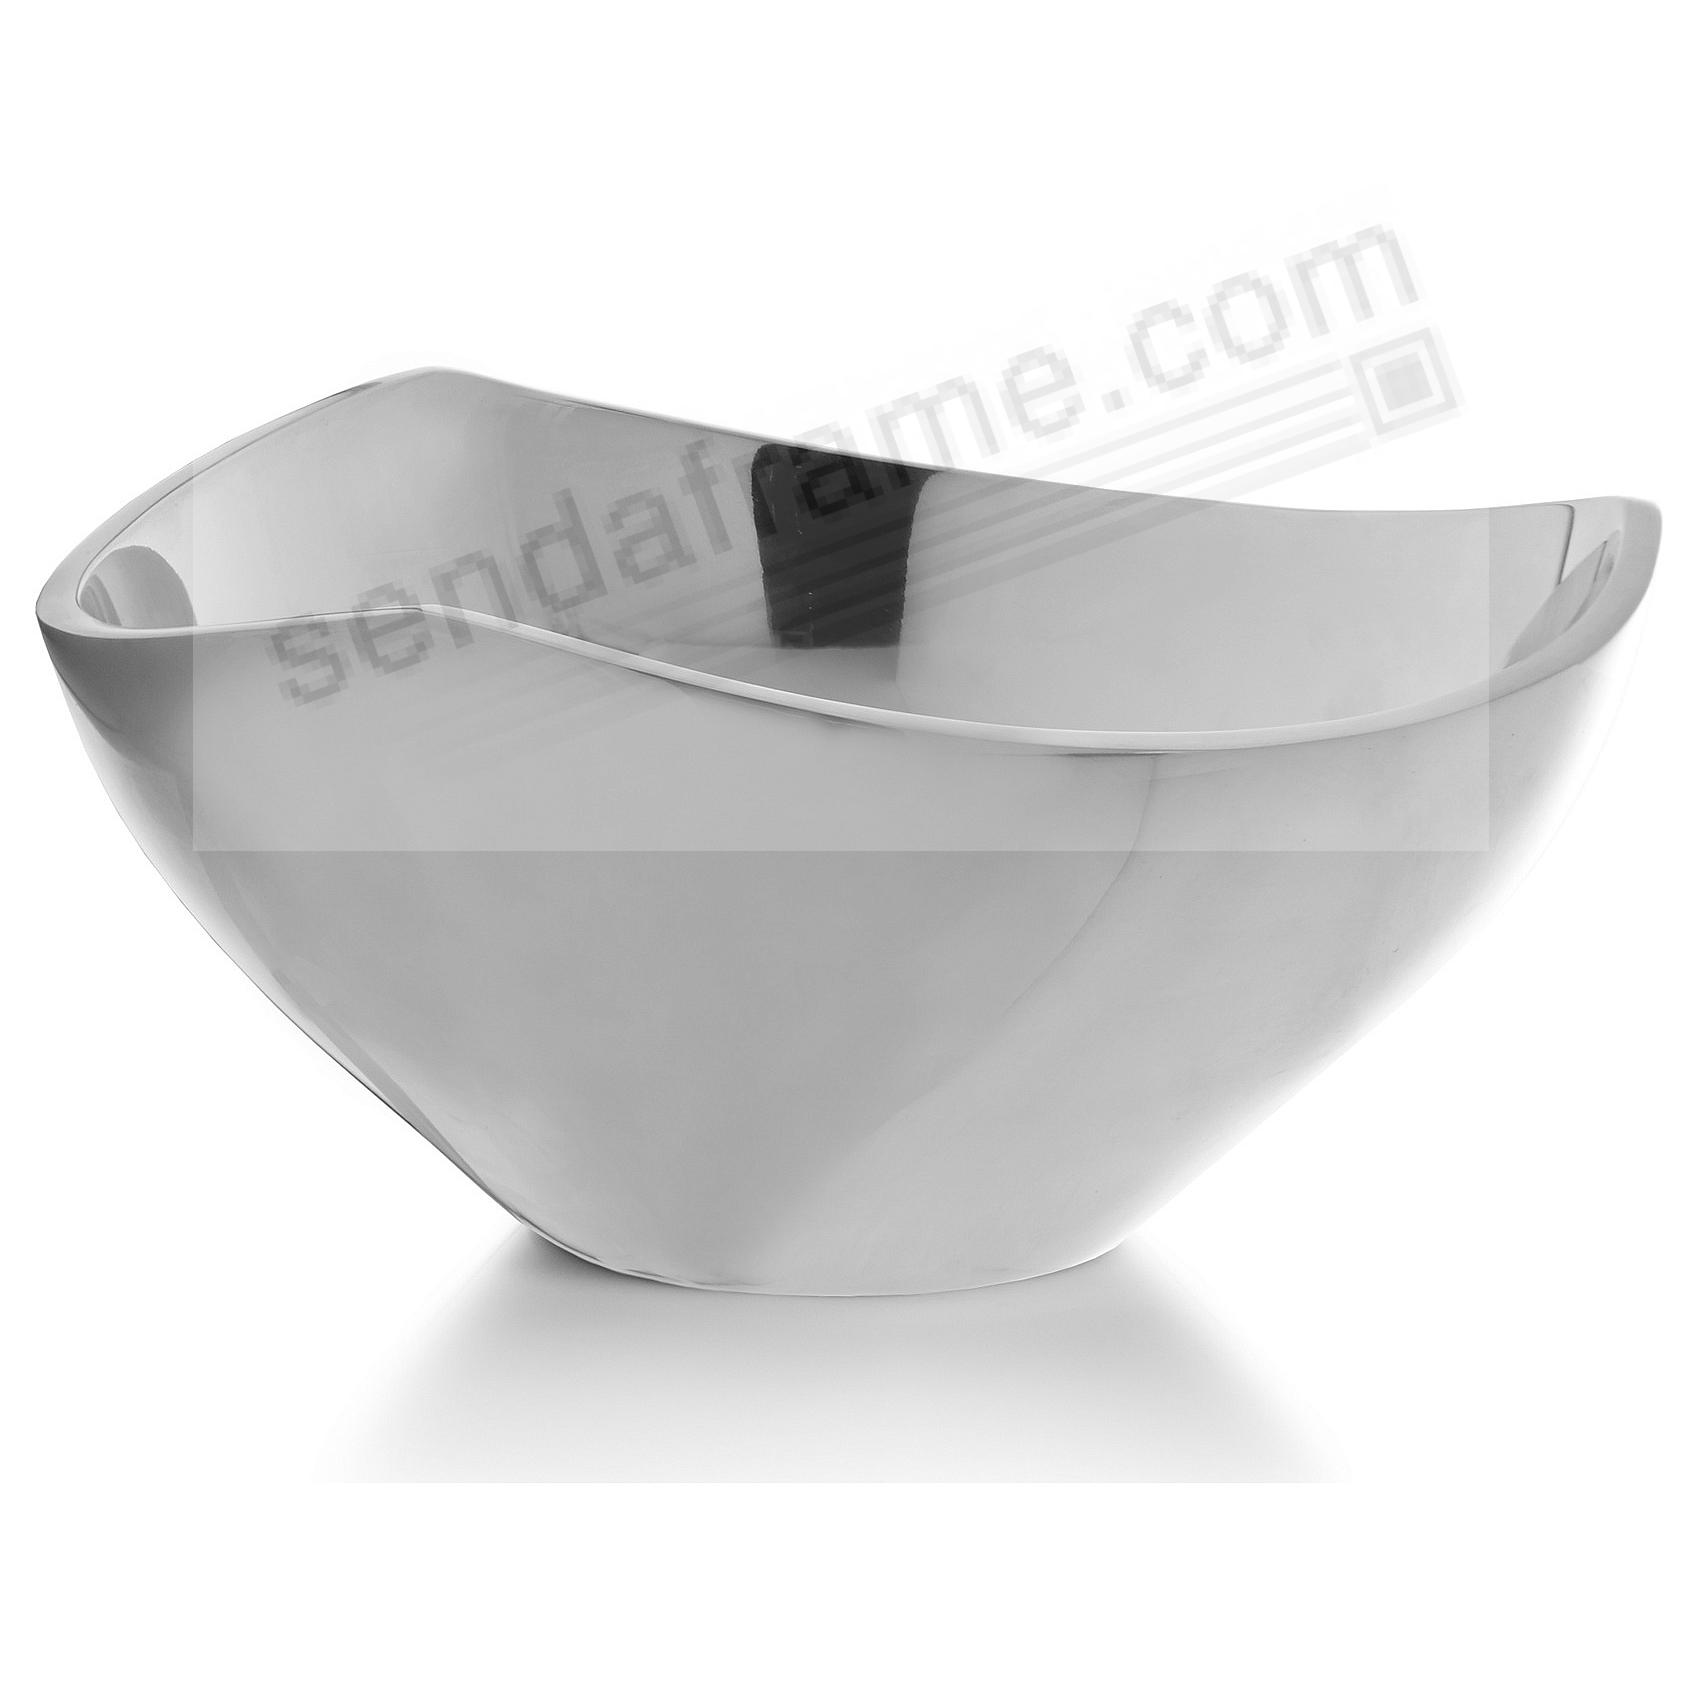 The Original TRI-CORNER BOWL 9-inch crafted by Nambe®